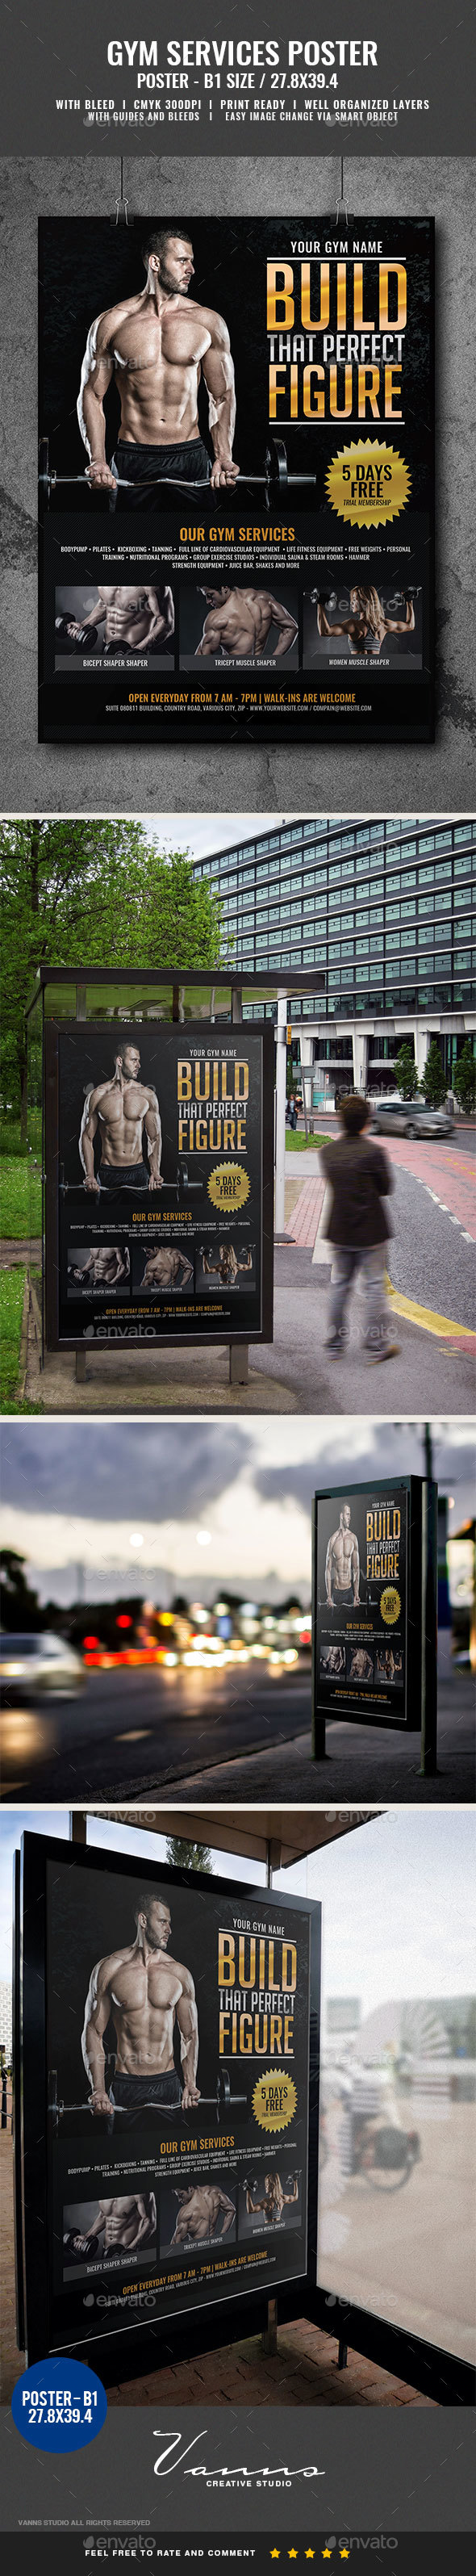 Gym Body Building Fitness Services Poster - Signage Print Templates